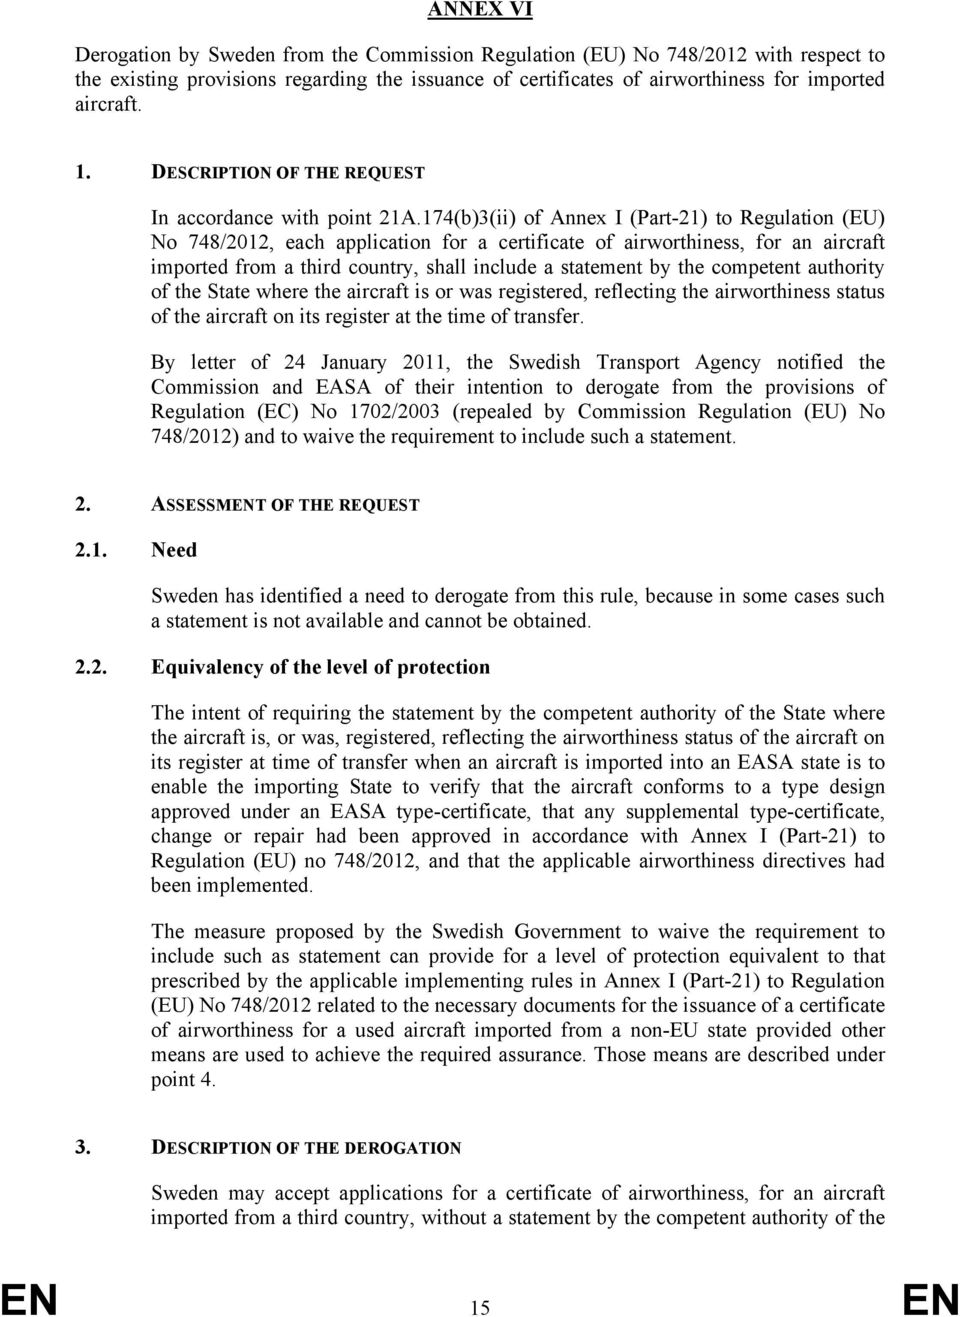 174(b)3(ii) of Annex I (Part-21) to Regulation (EU) No 748/2012, each application for a certificate of airworthiness, for an aircraft imported from a third country, shall include a statement by the